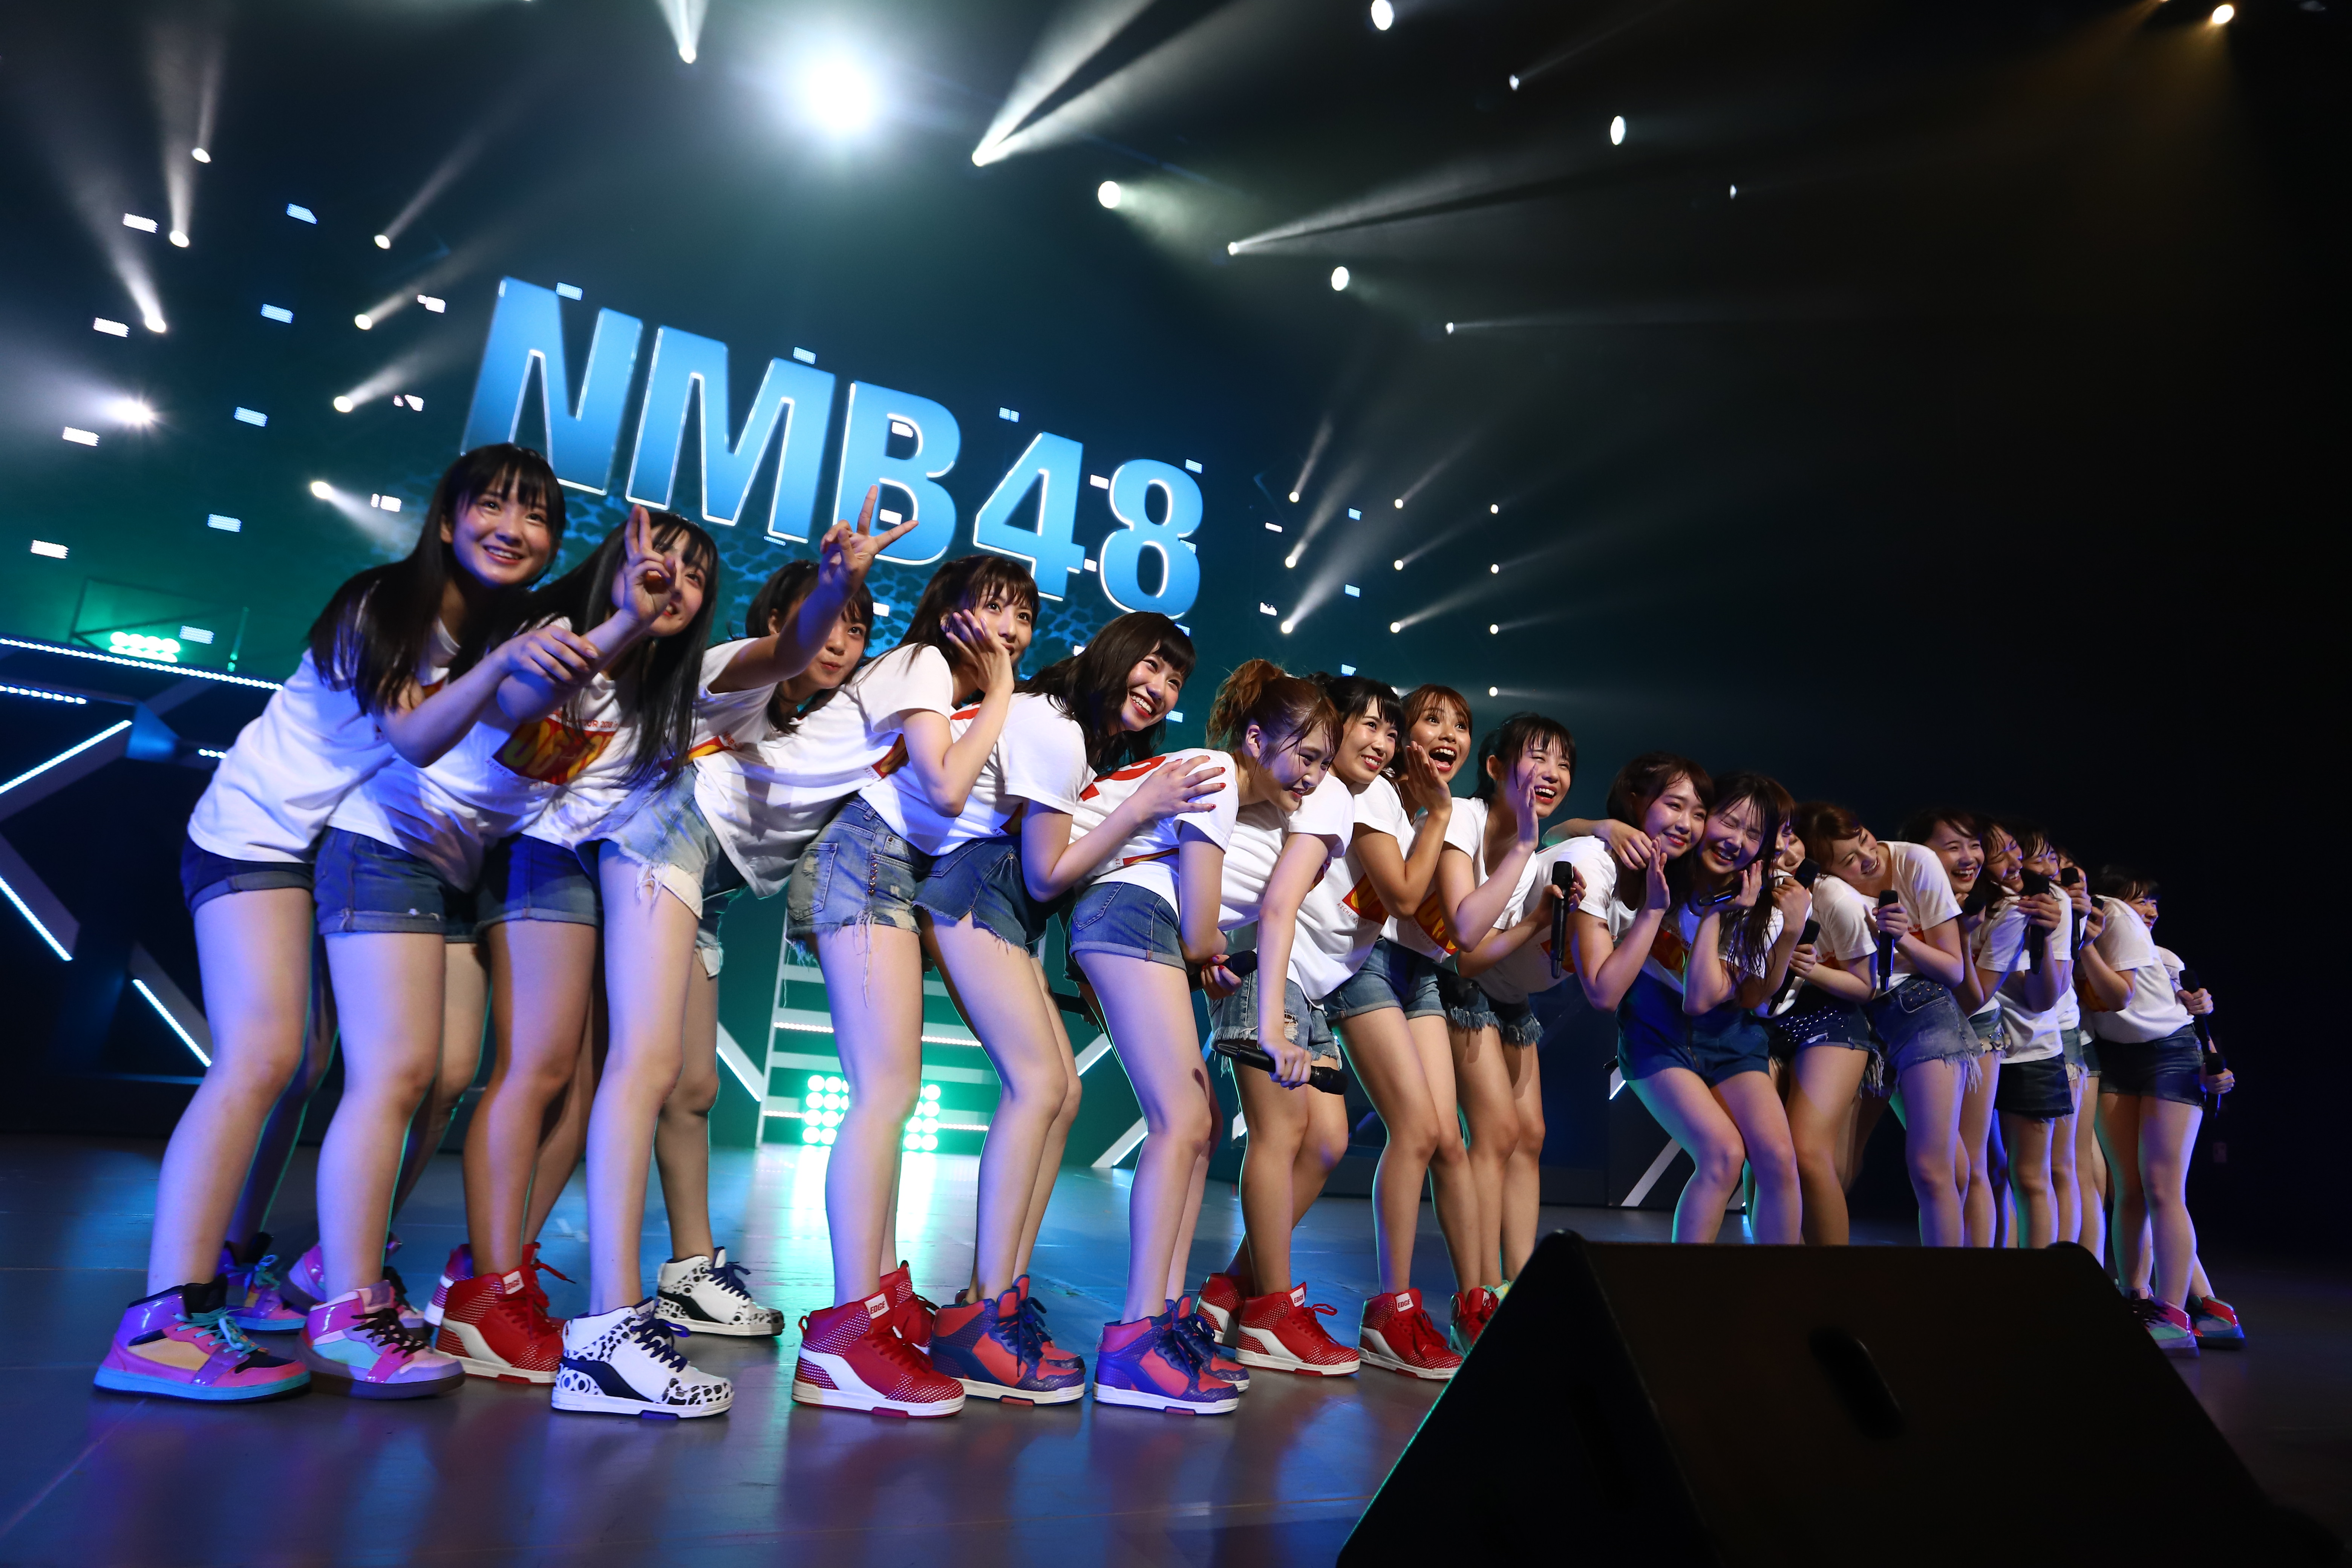 NMB48 LIVE TOUR 2018 名古屋 チームM公演-190